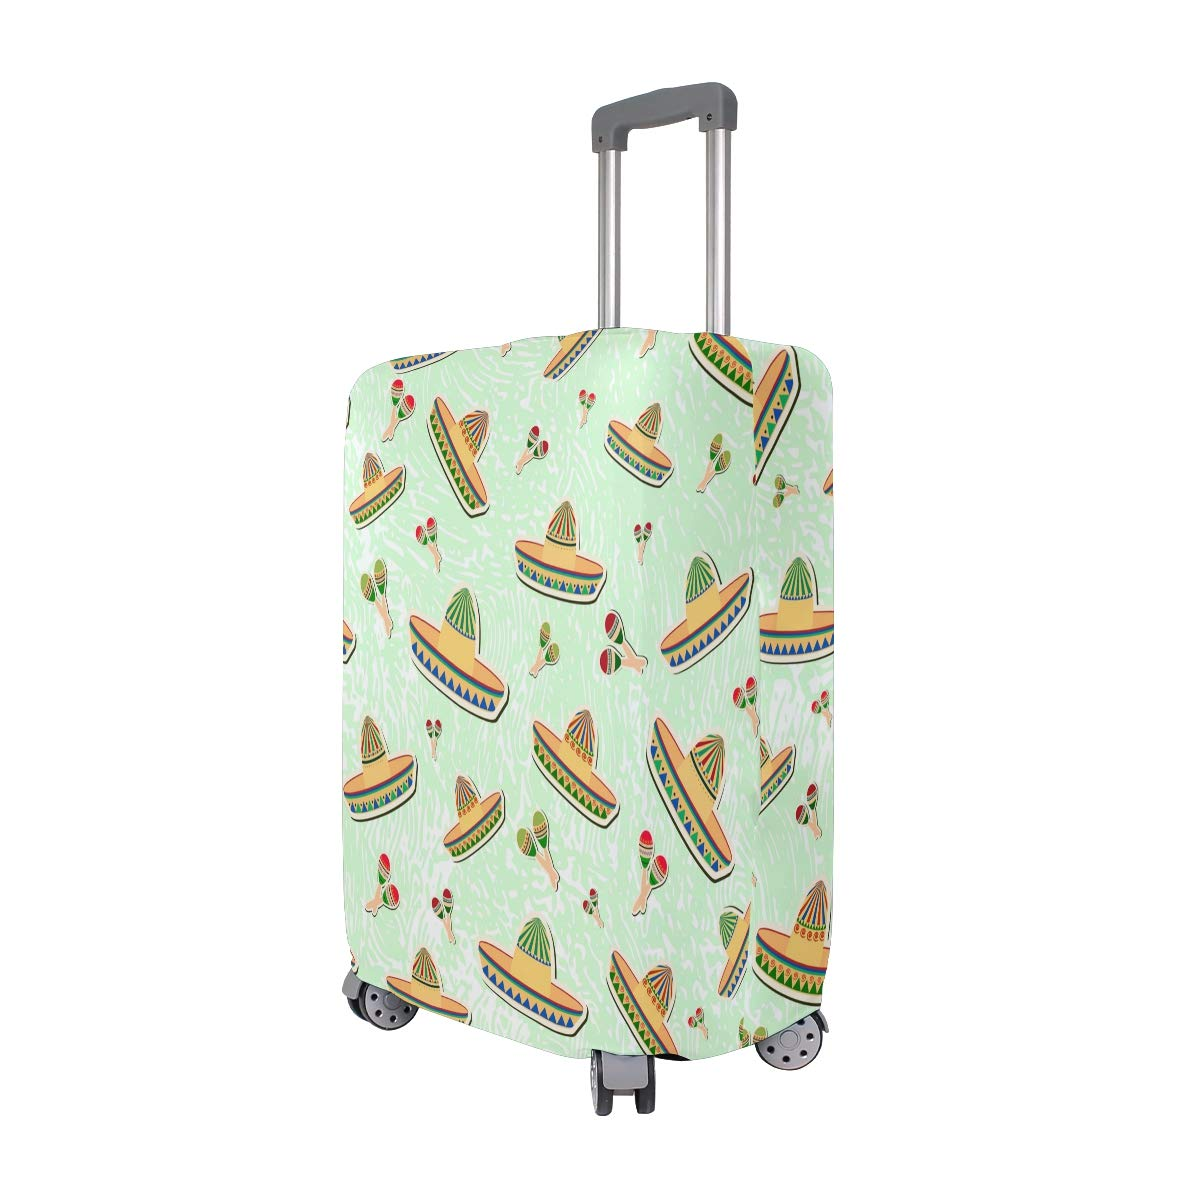 VIKKO Mexico Characteristic Travel Luggage Cover Suitcase Cover Protector Travel Case Bag Protector Elastic Luggage Case Cover Fits 26-28 Inch Luggage for Kids Men Women Travel